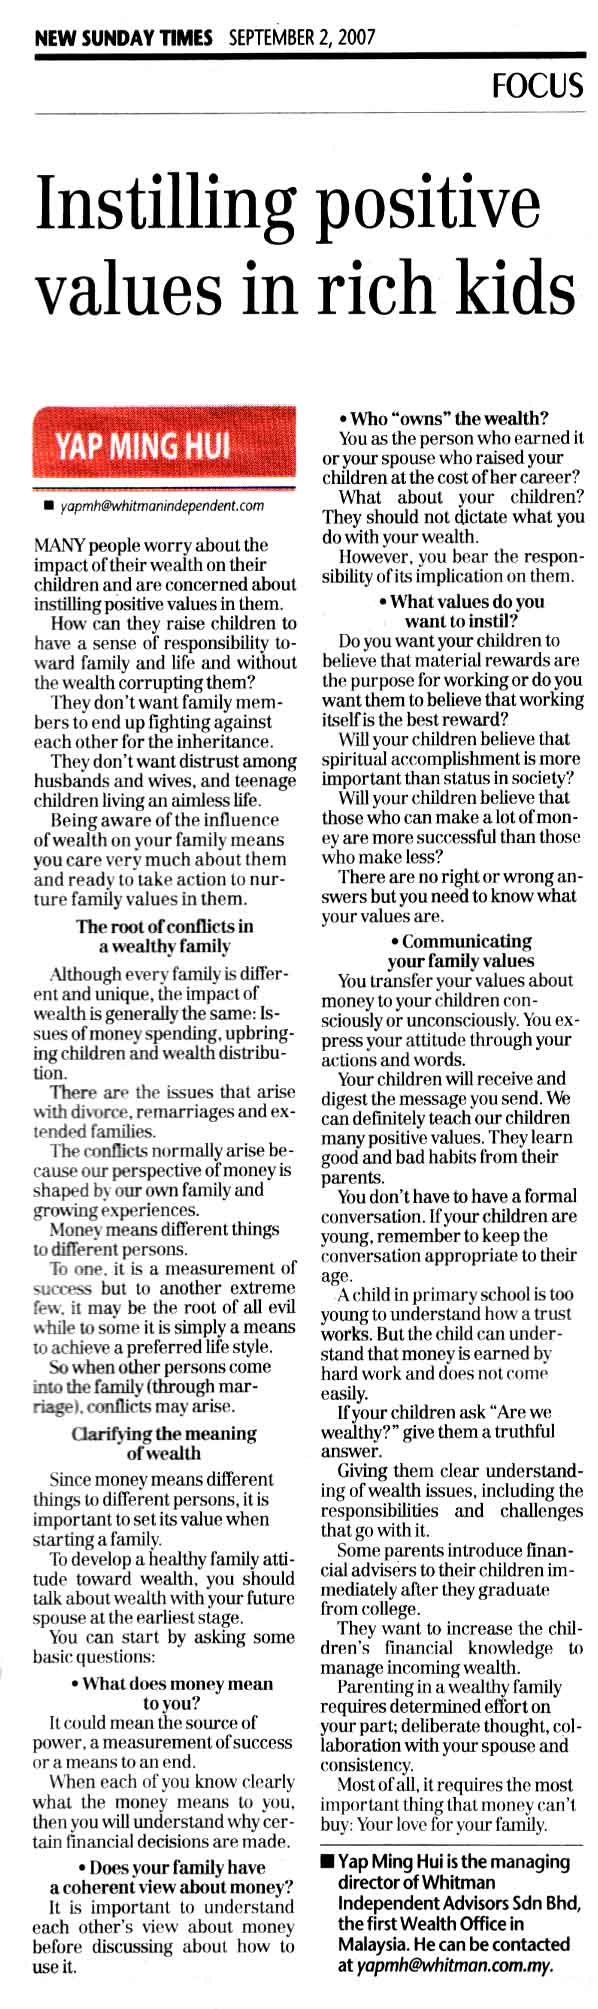 Instilling possitive values in rich kids (New Sunday Times) - 02 Sep 2007